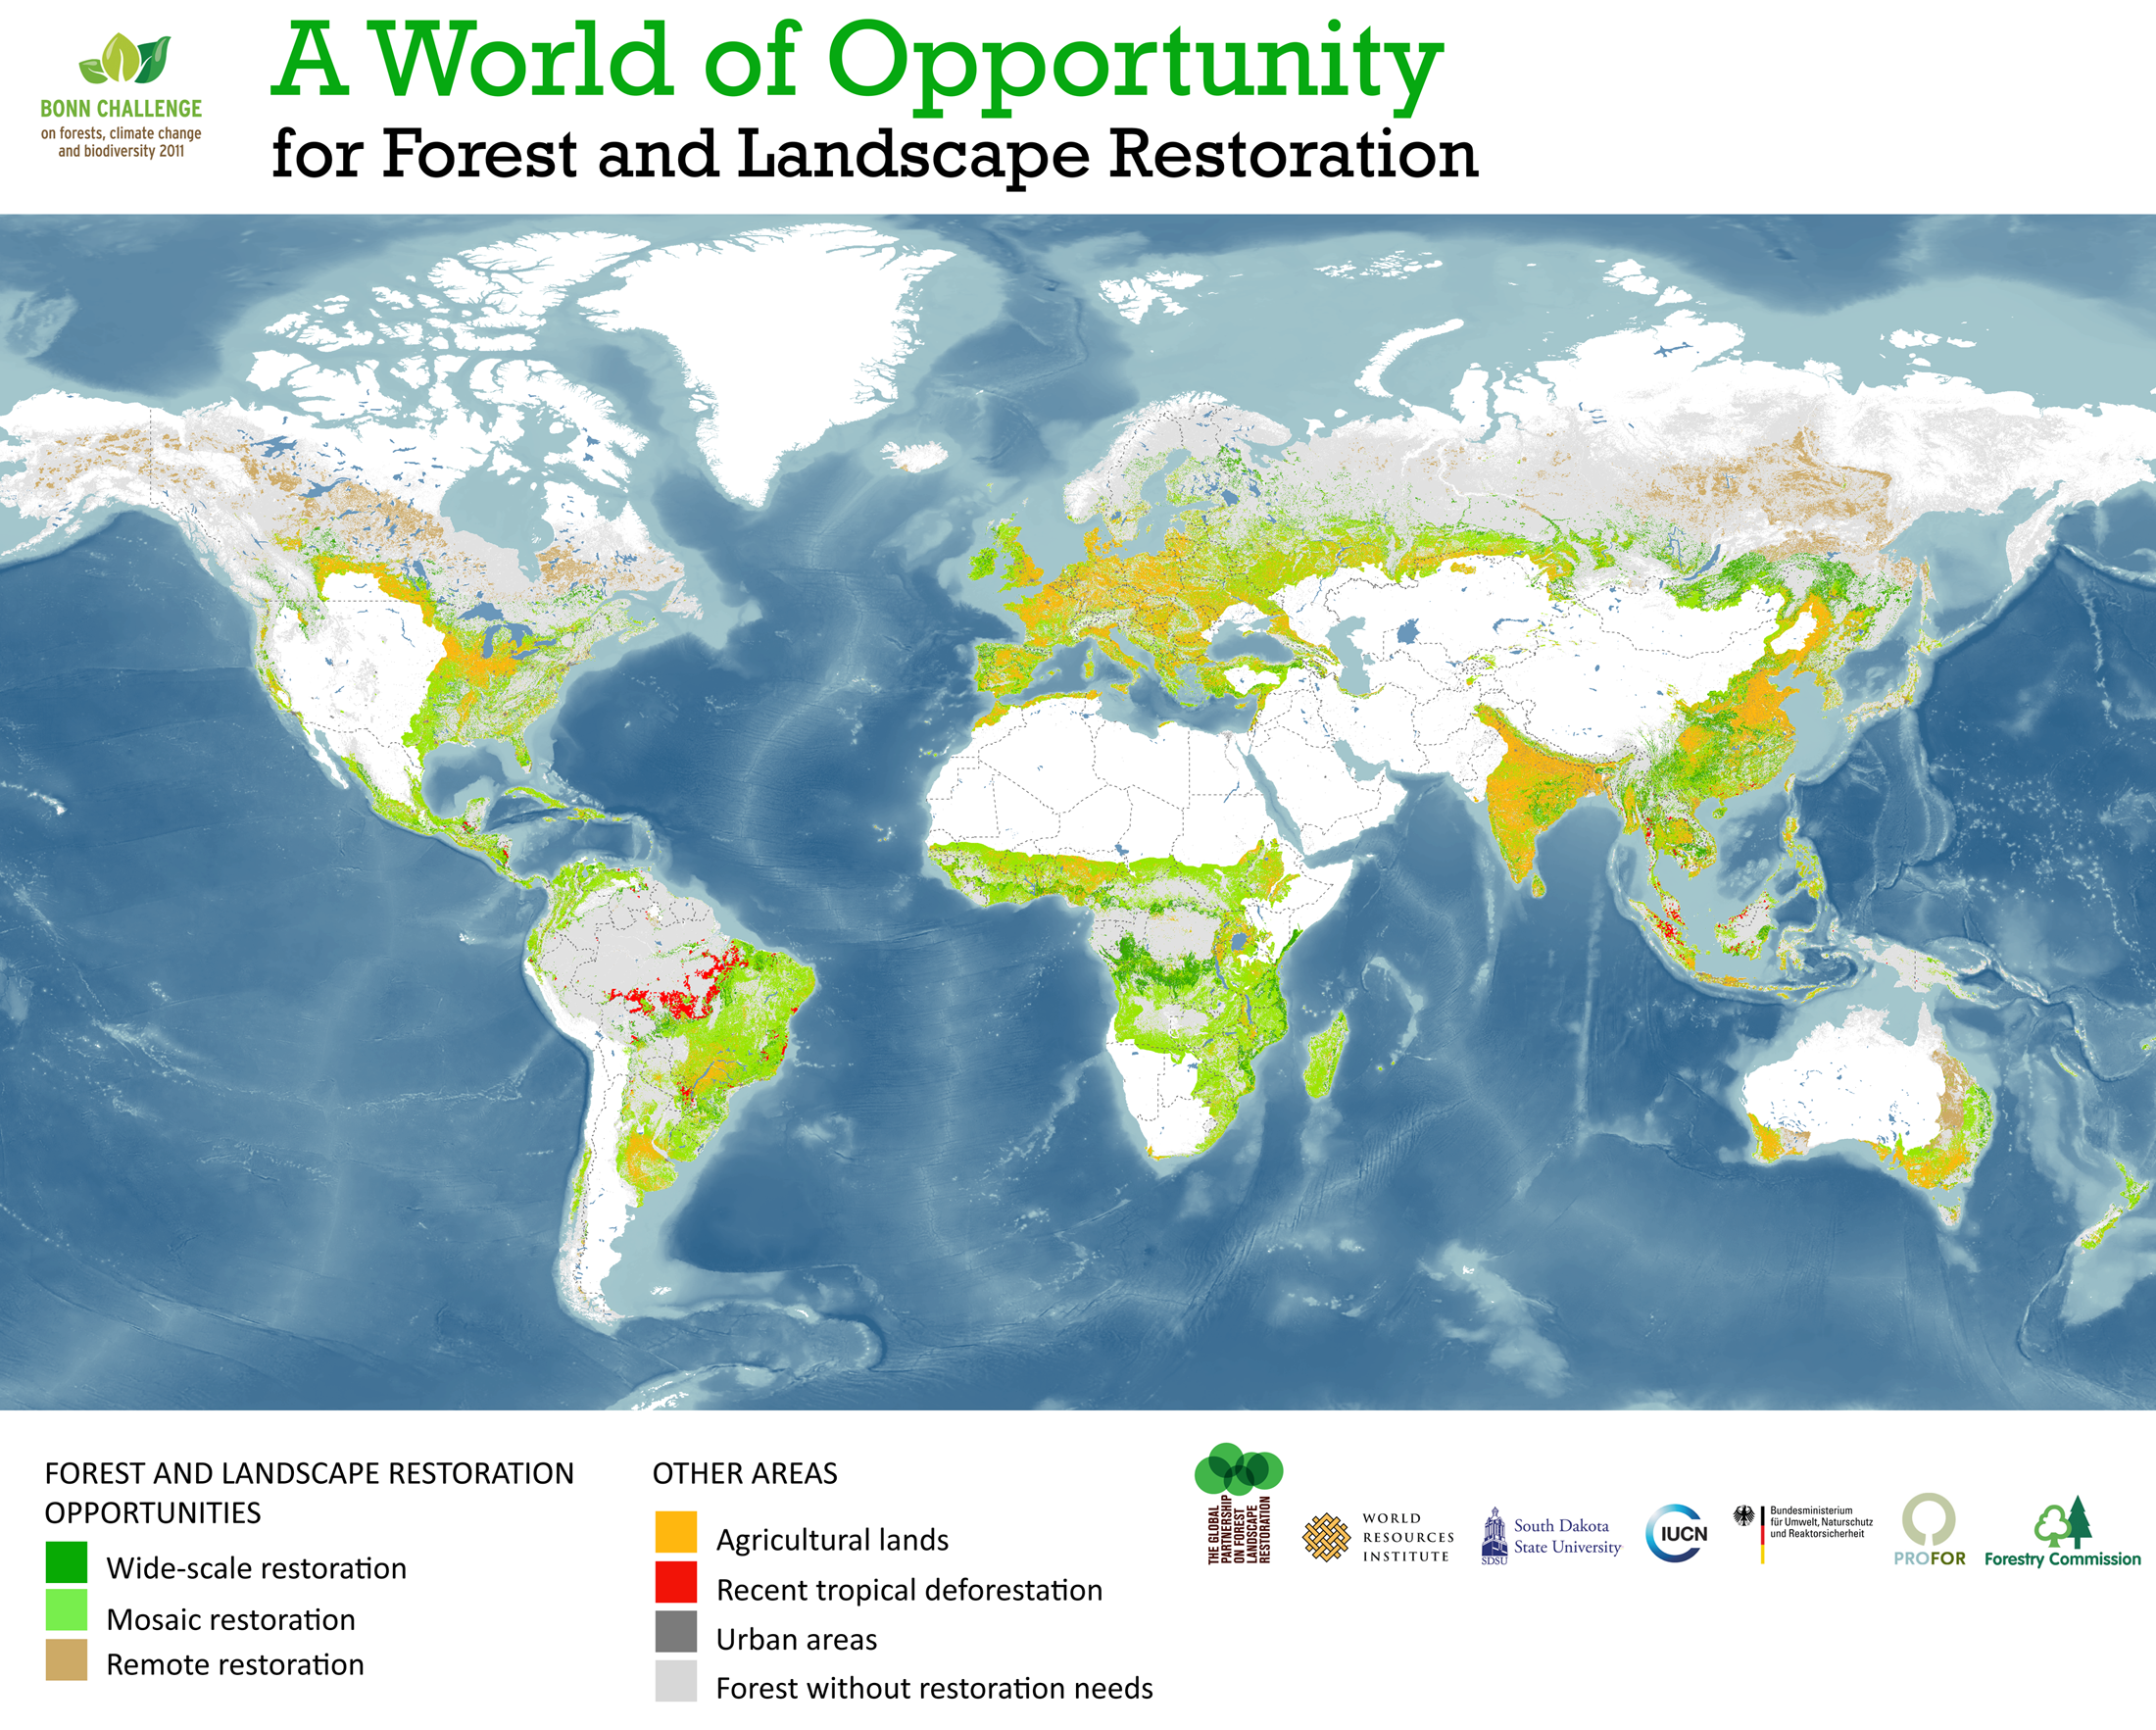 <p>WRI identified 2 billion hectares of degraded land that offer opportunities for restoration. Some of these areas overlap with bamboo growing areas. Click on the map to view a larger version.</p>